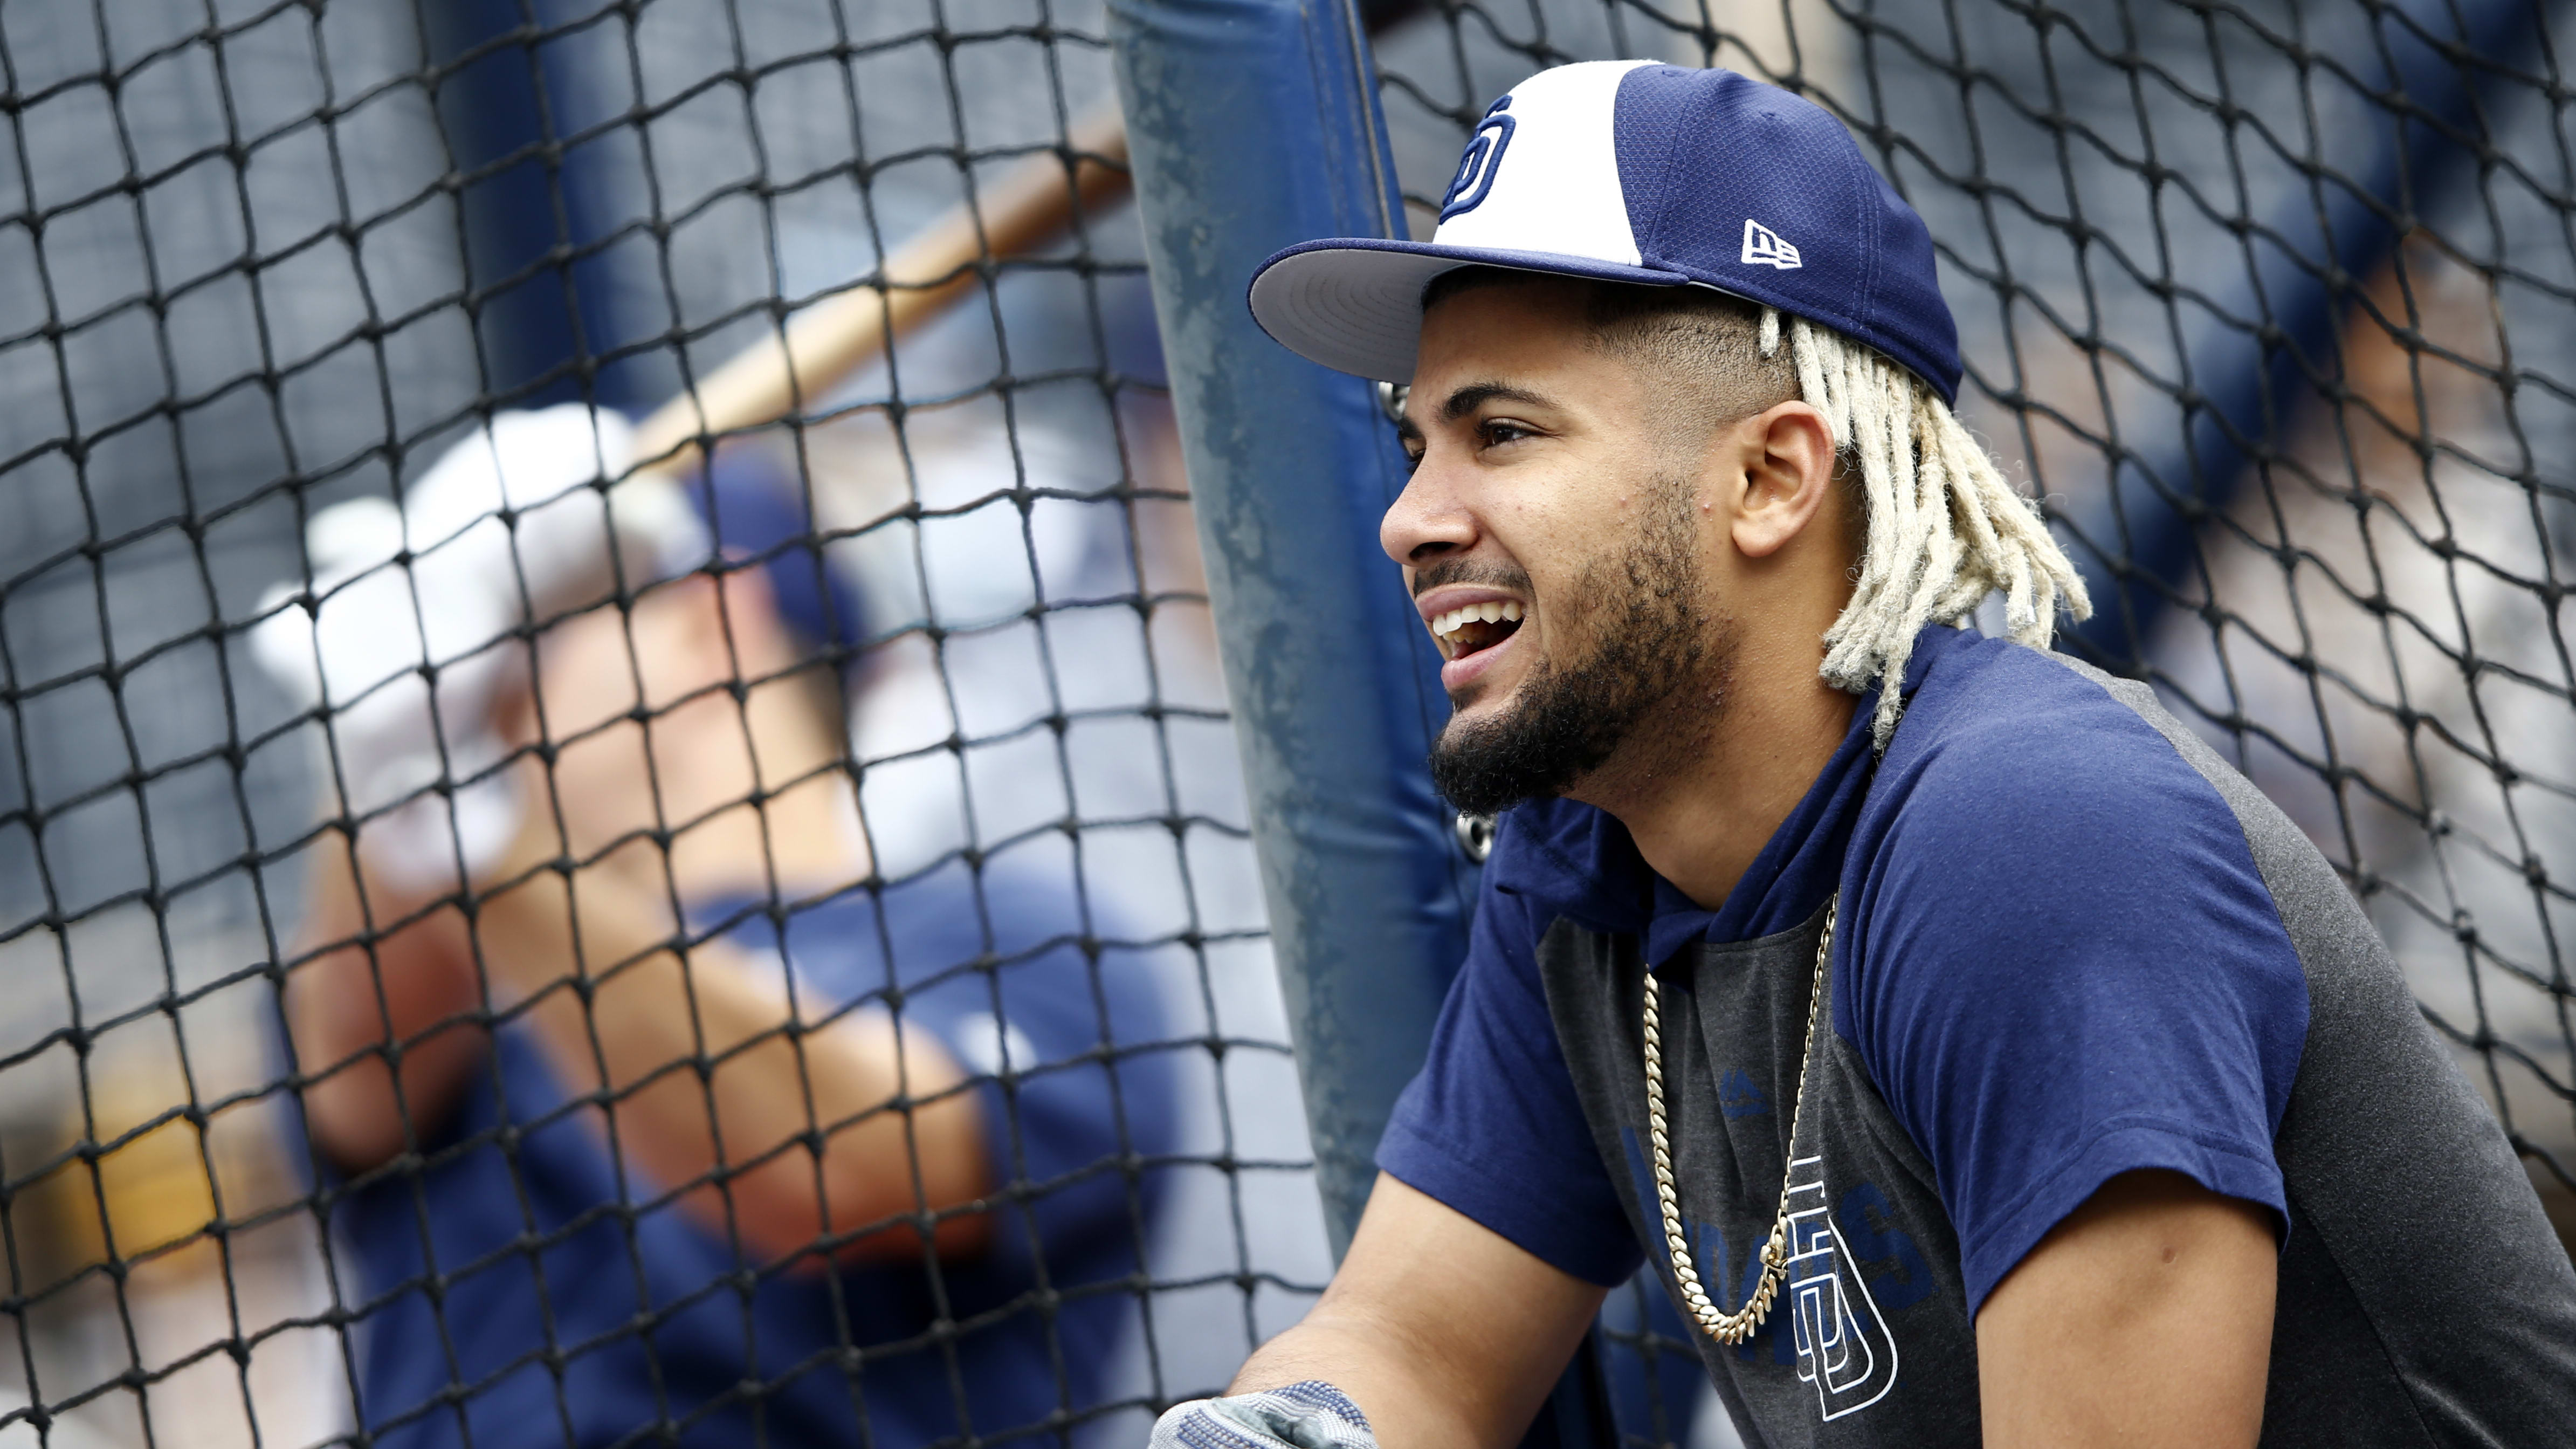 SAN DIEGO, CALIFORNIA - APRIL 16:  Fernando Tatis Jr. #23 of the San Diego Padres looks on during batting practice prior to a game against the Colorado Rockies at PETCO Park on April 16, 2019 in San Diego, California. (Photo by Sean M. Haffey/Getty Images)